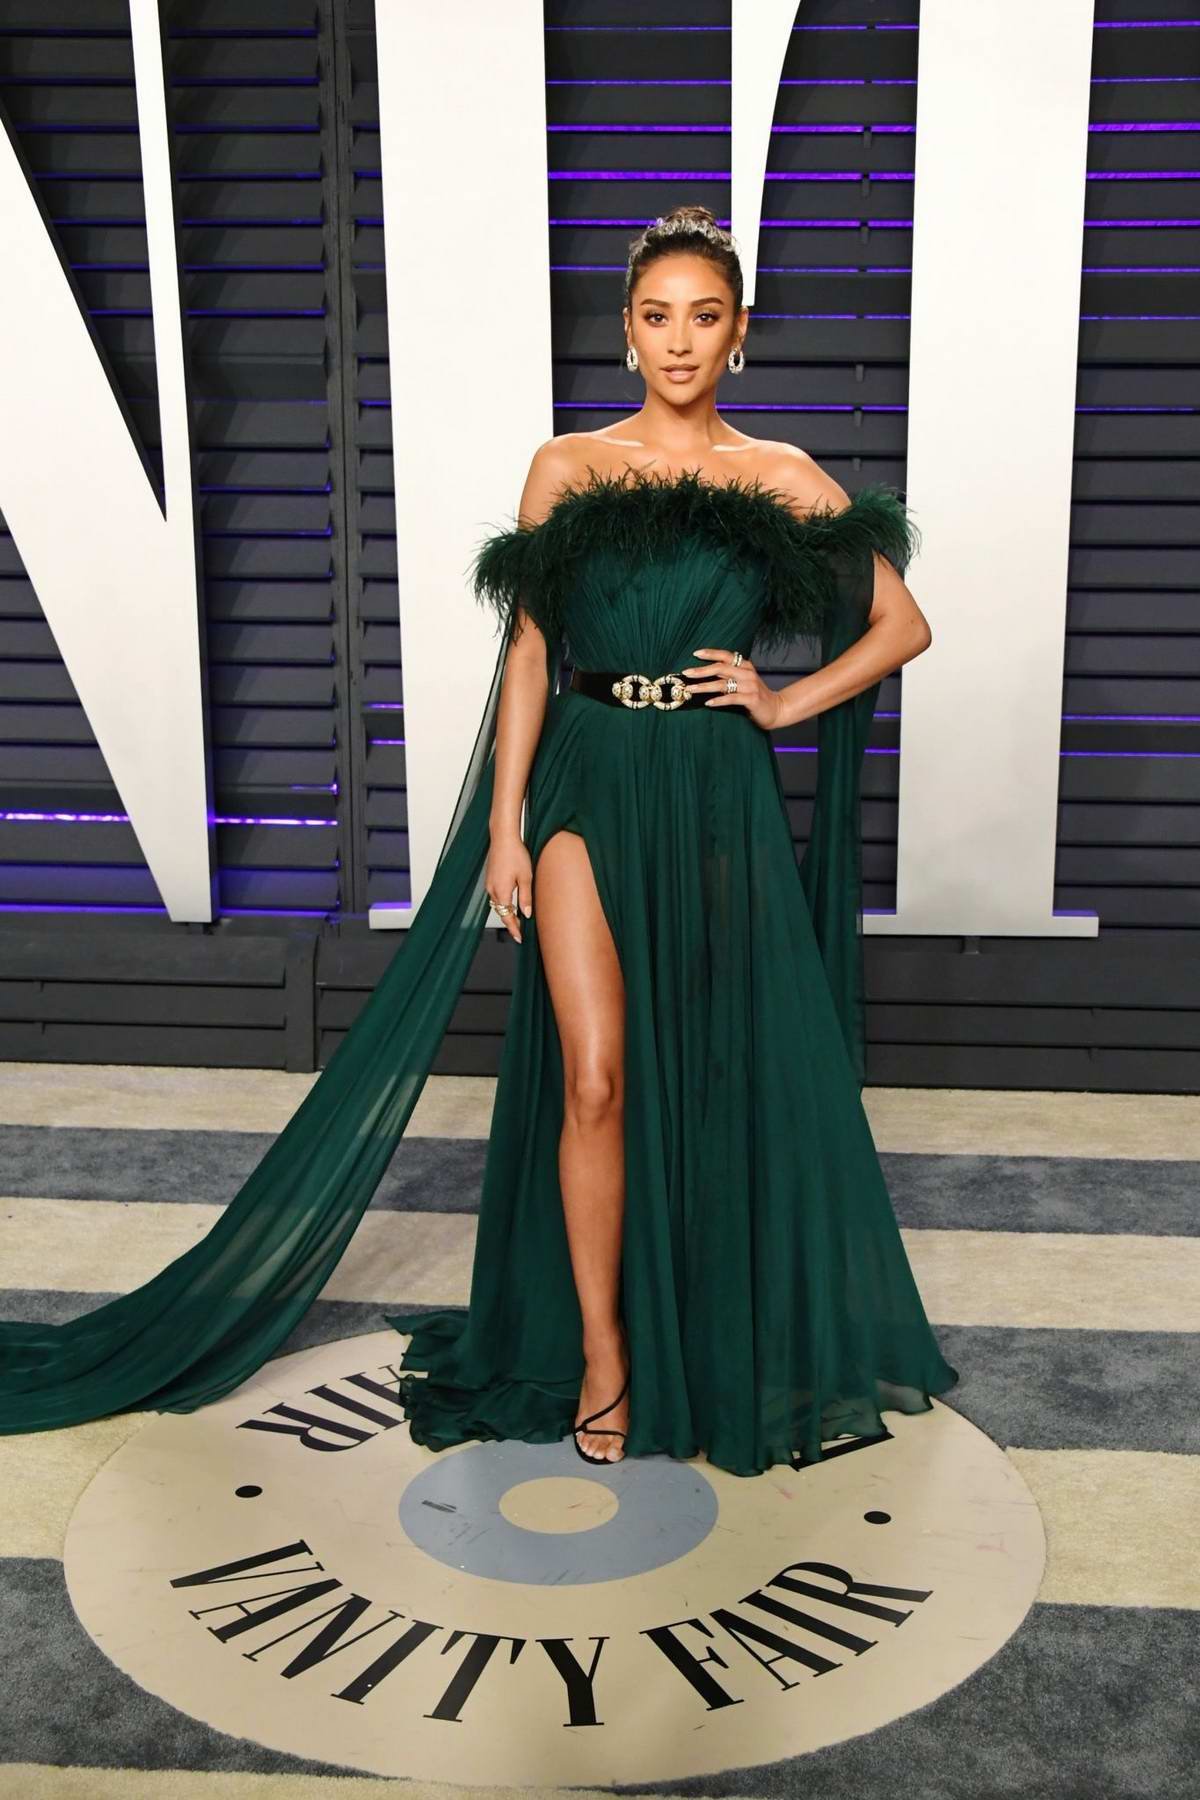 Shay Mitchell attends the Vanity Fair Oscar Party at Wallis Annenberg Center for the Performing Arts in Beverly Hills, California